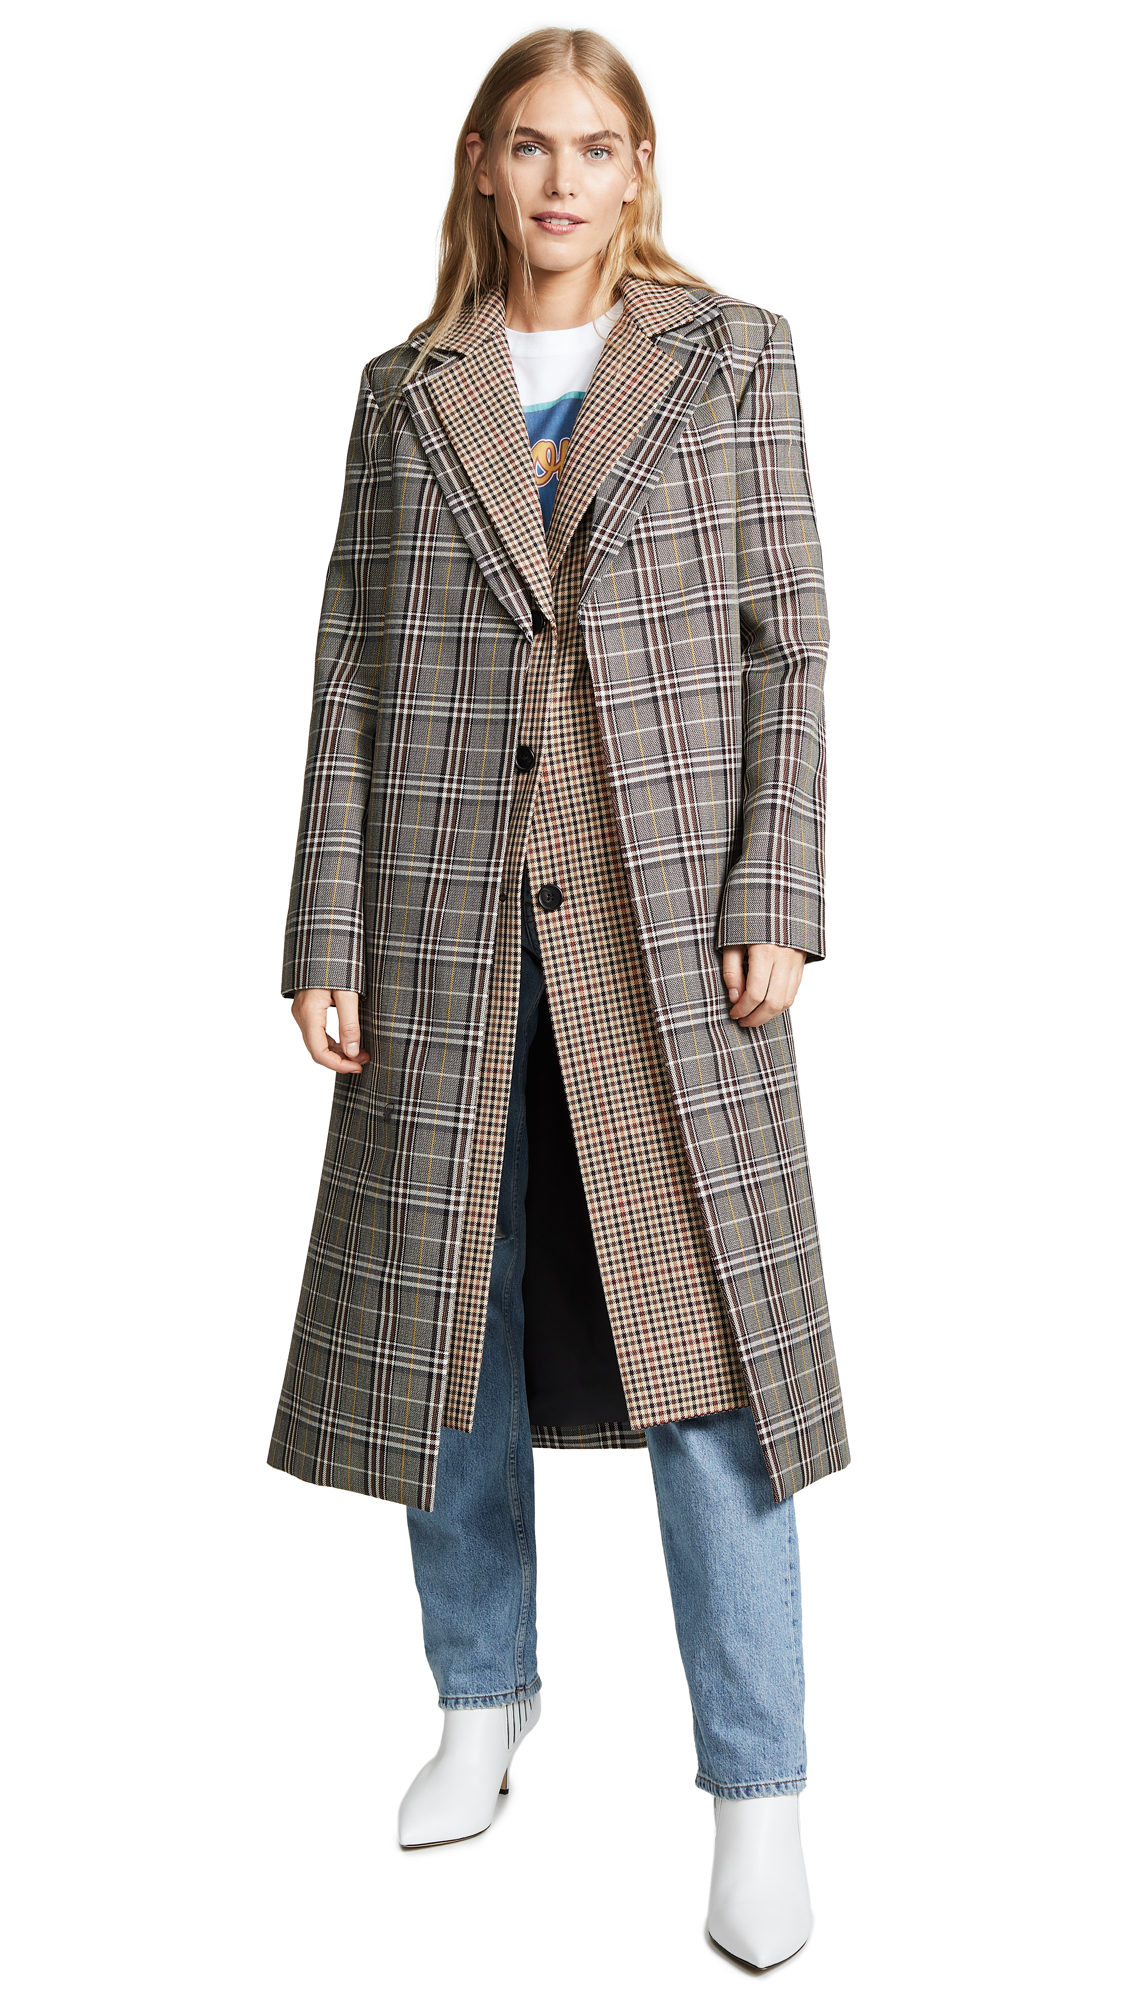 Monse Double Collar Coat In Plaid